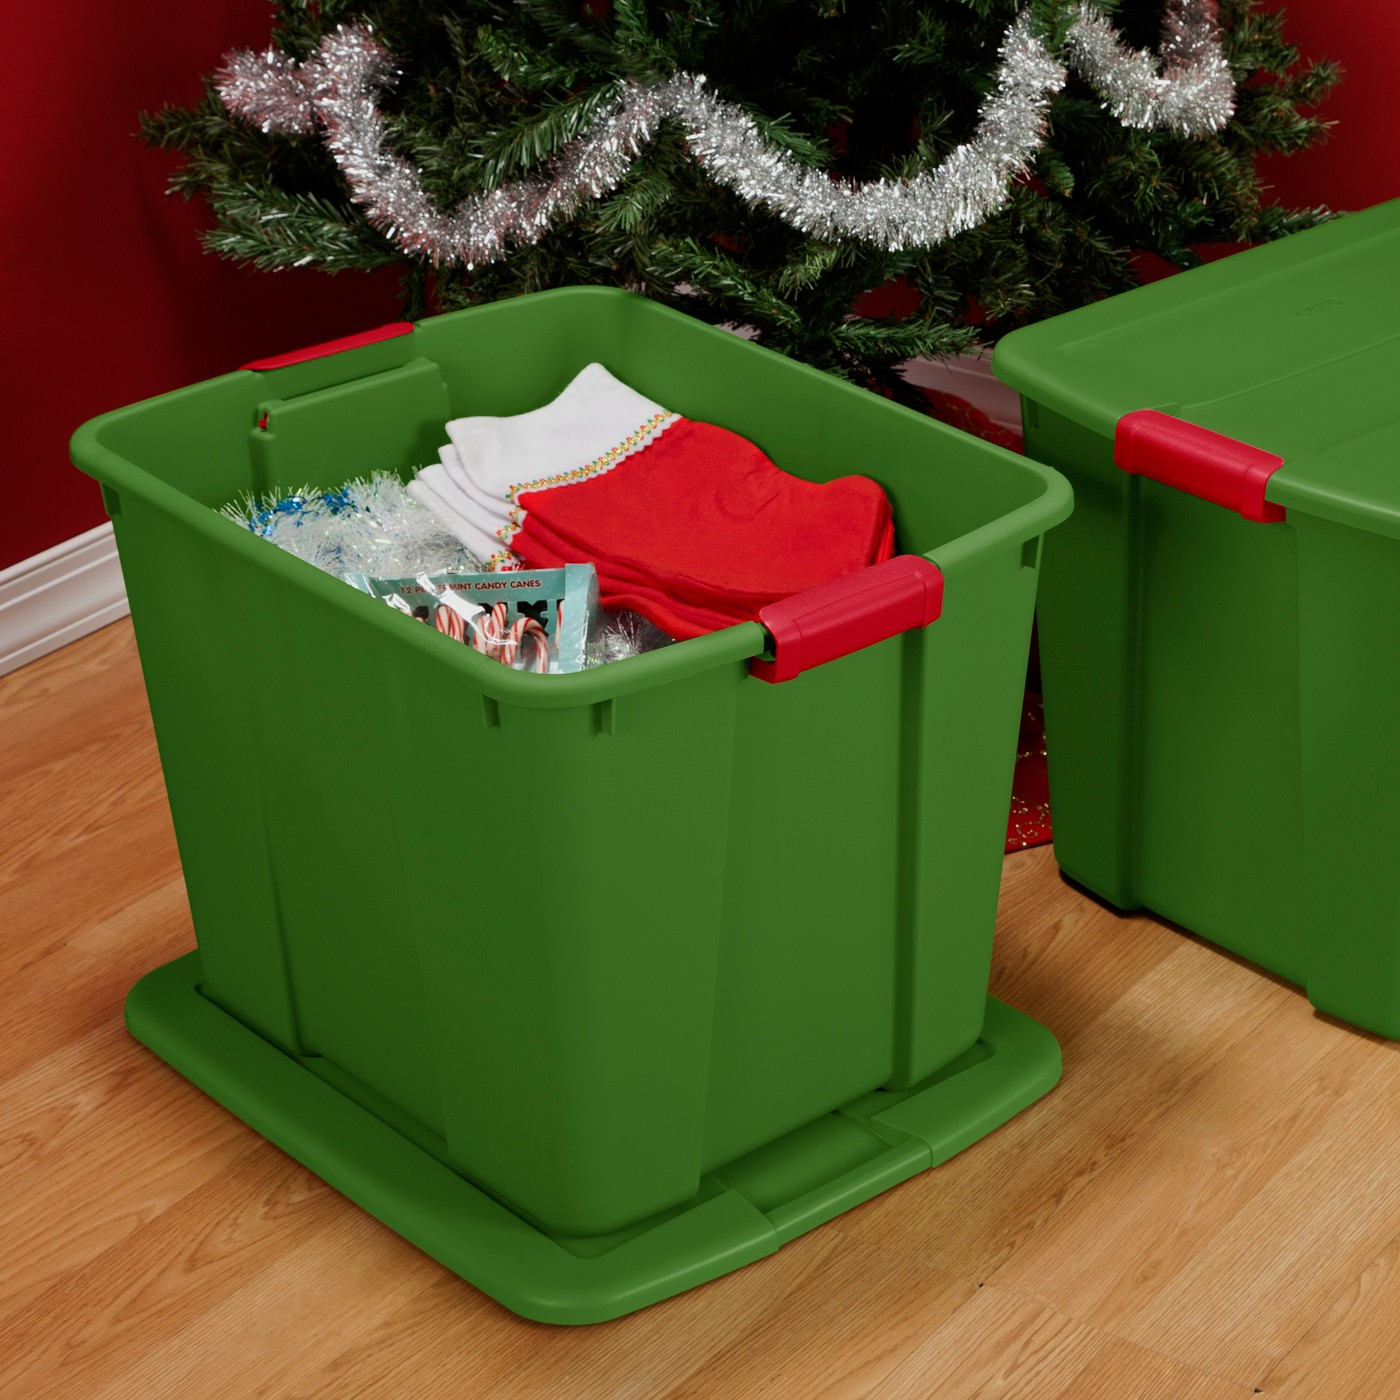 Sterilite 20gal Tote - Green with Green Lid and Red Latches - image 4 of 5